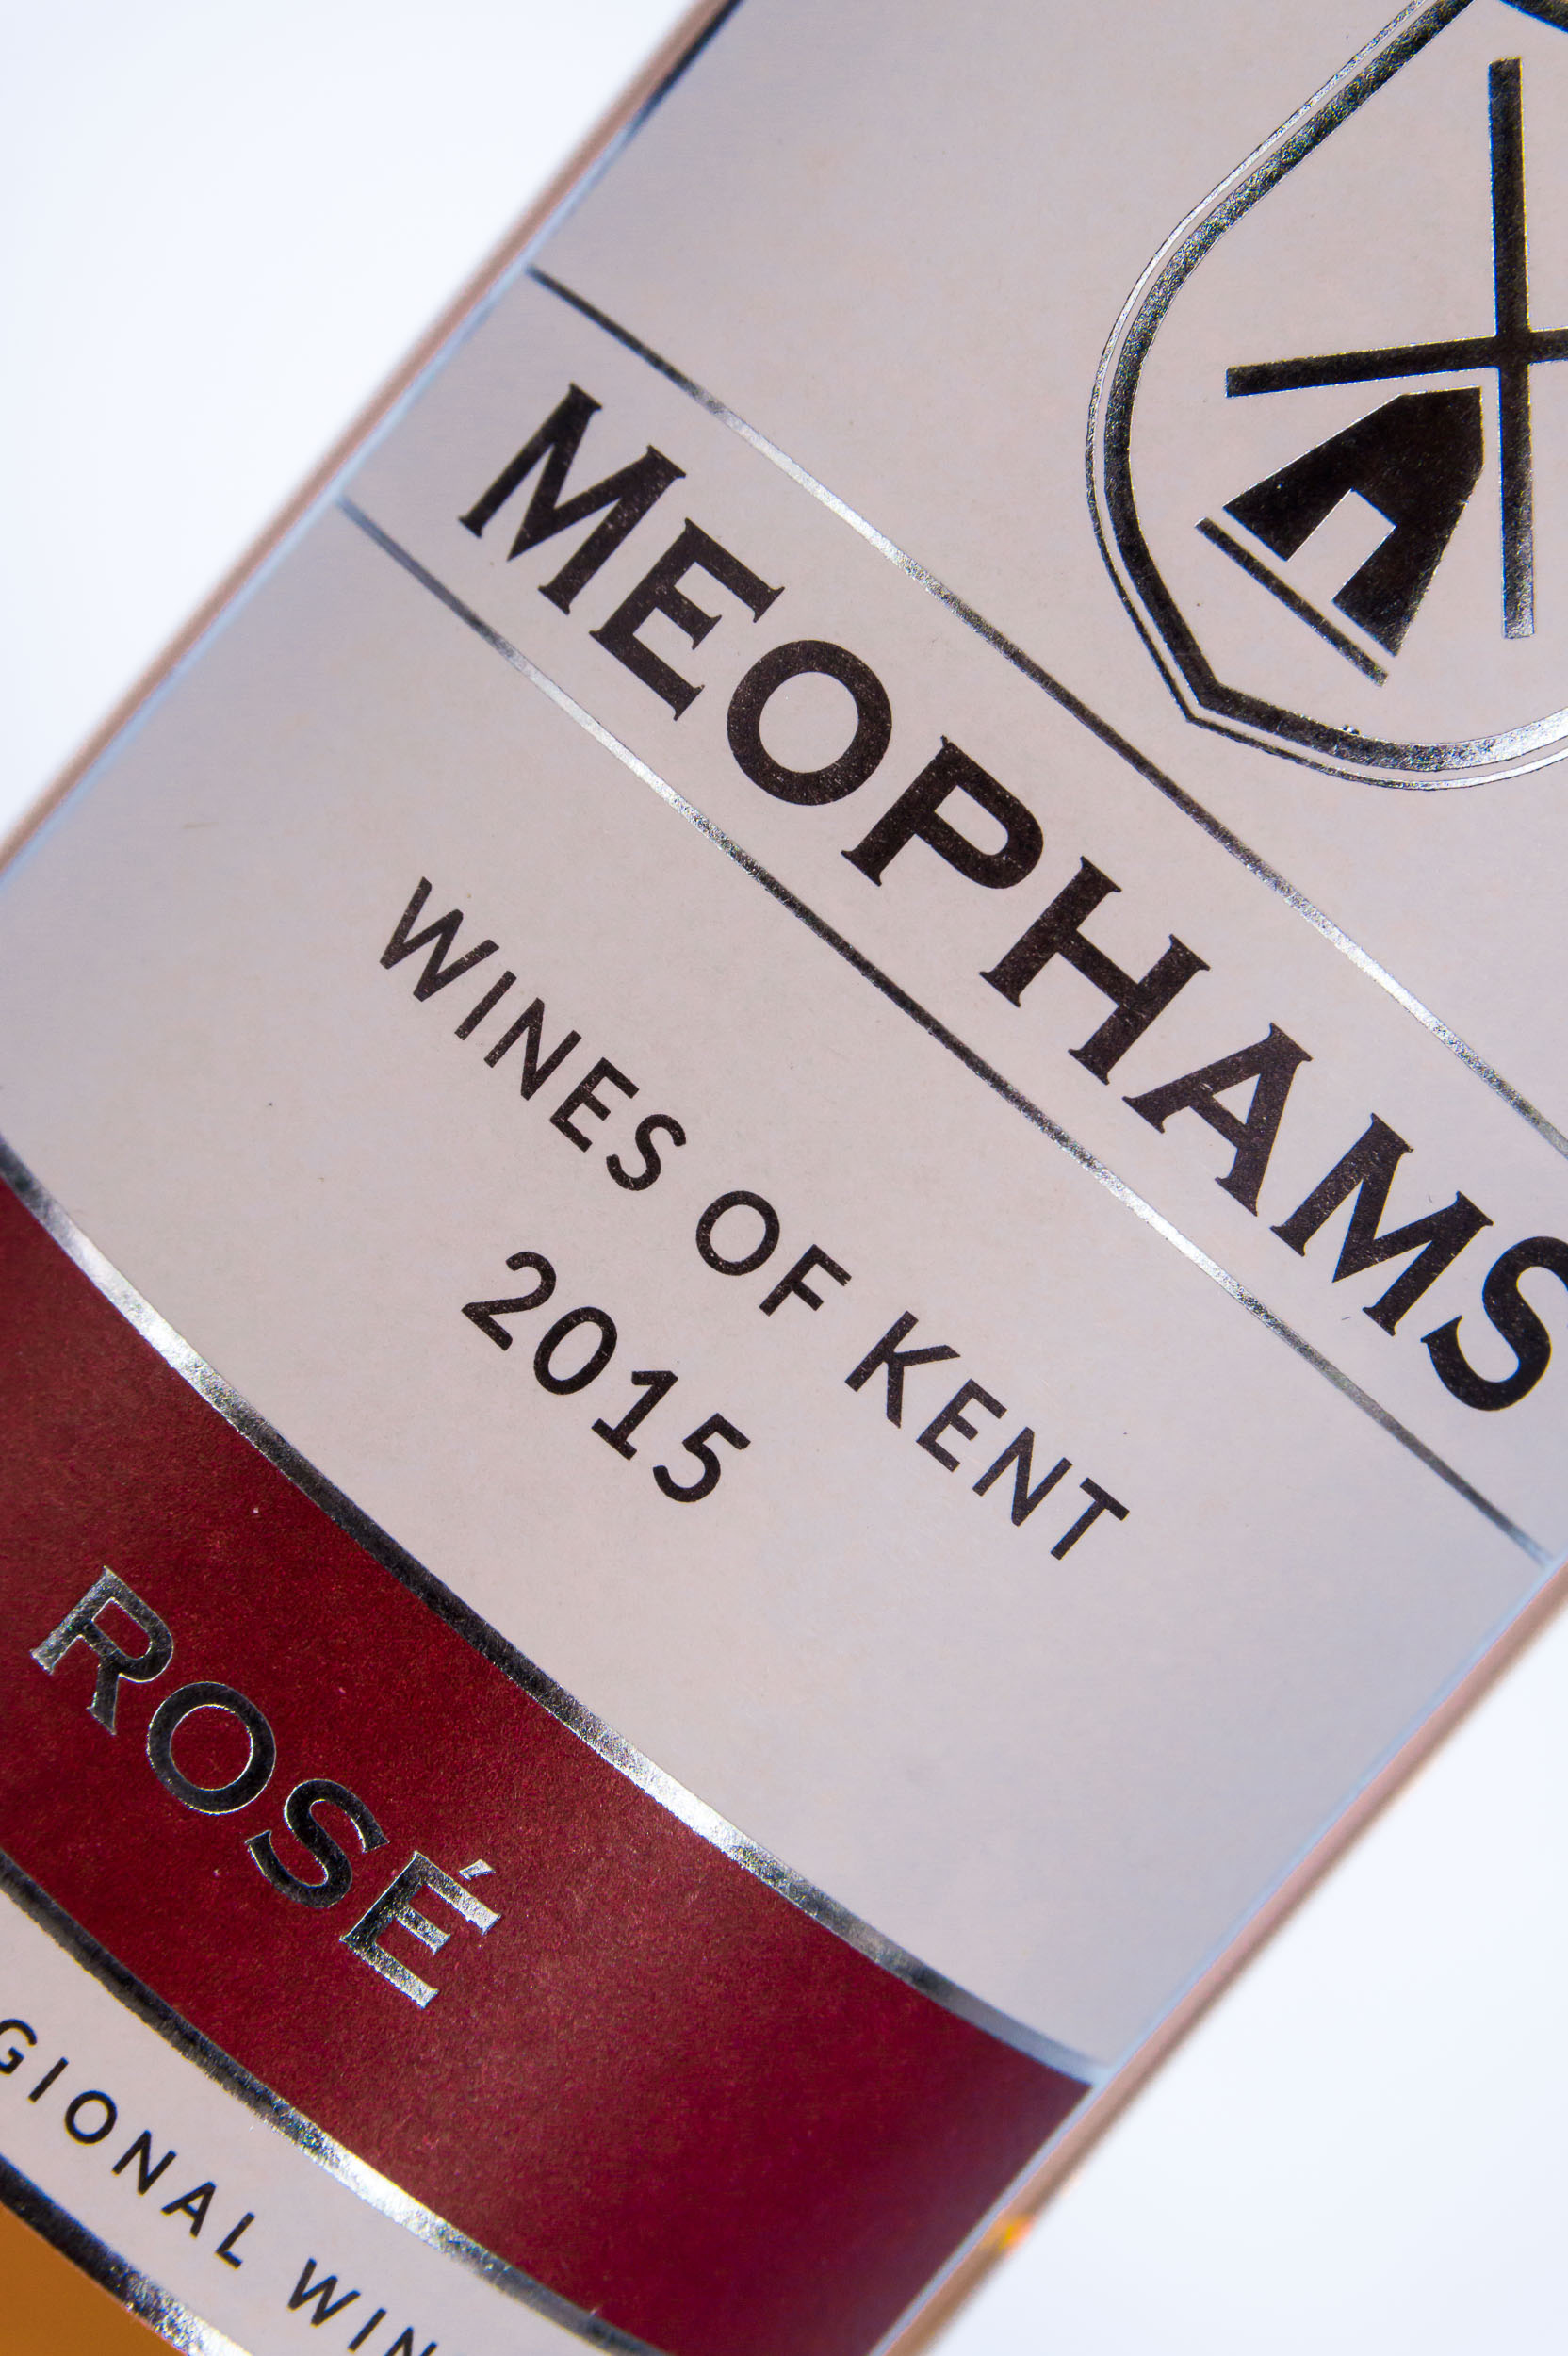 Meophams-Rose-Kent-English-Wine-2015-9